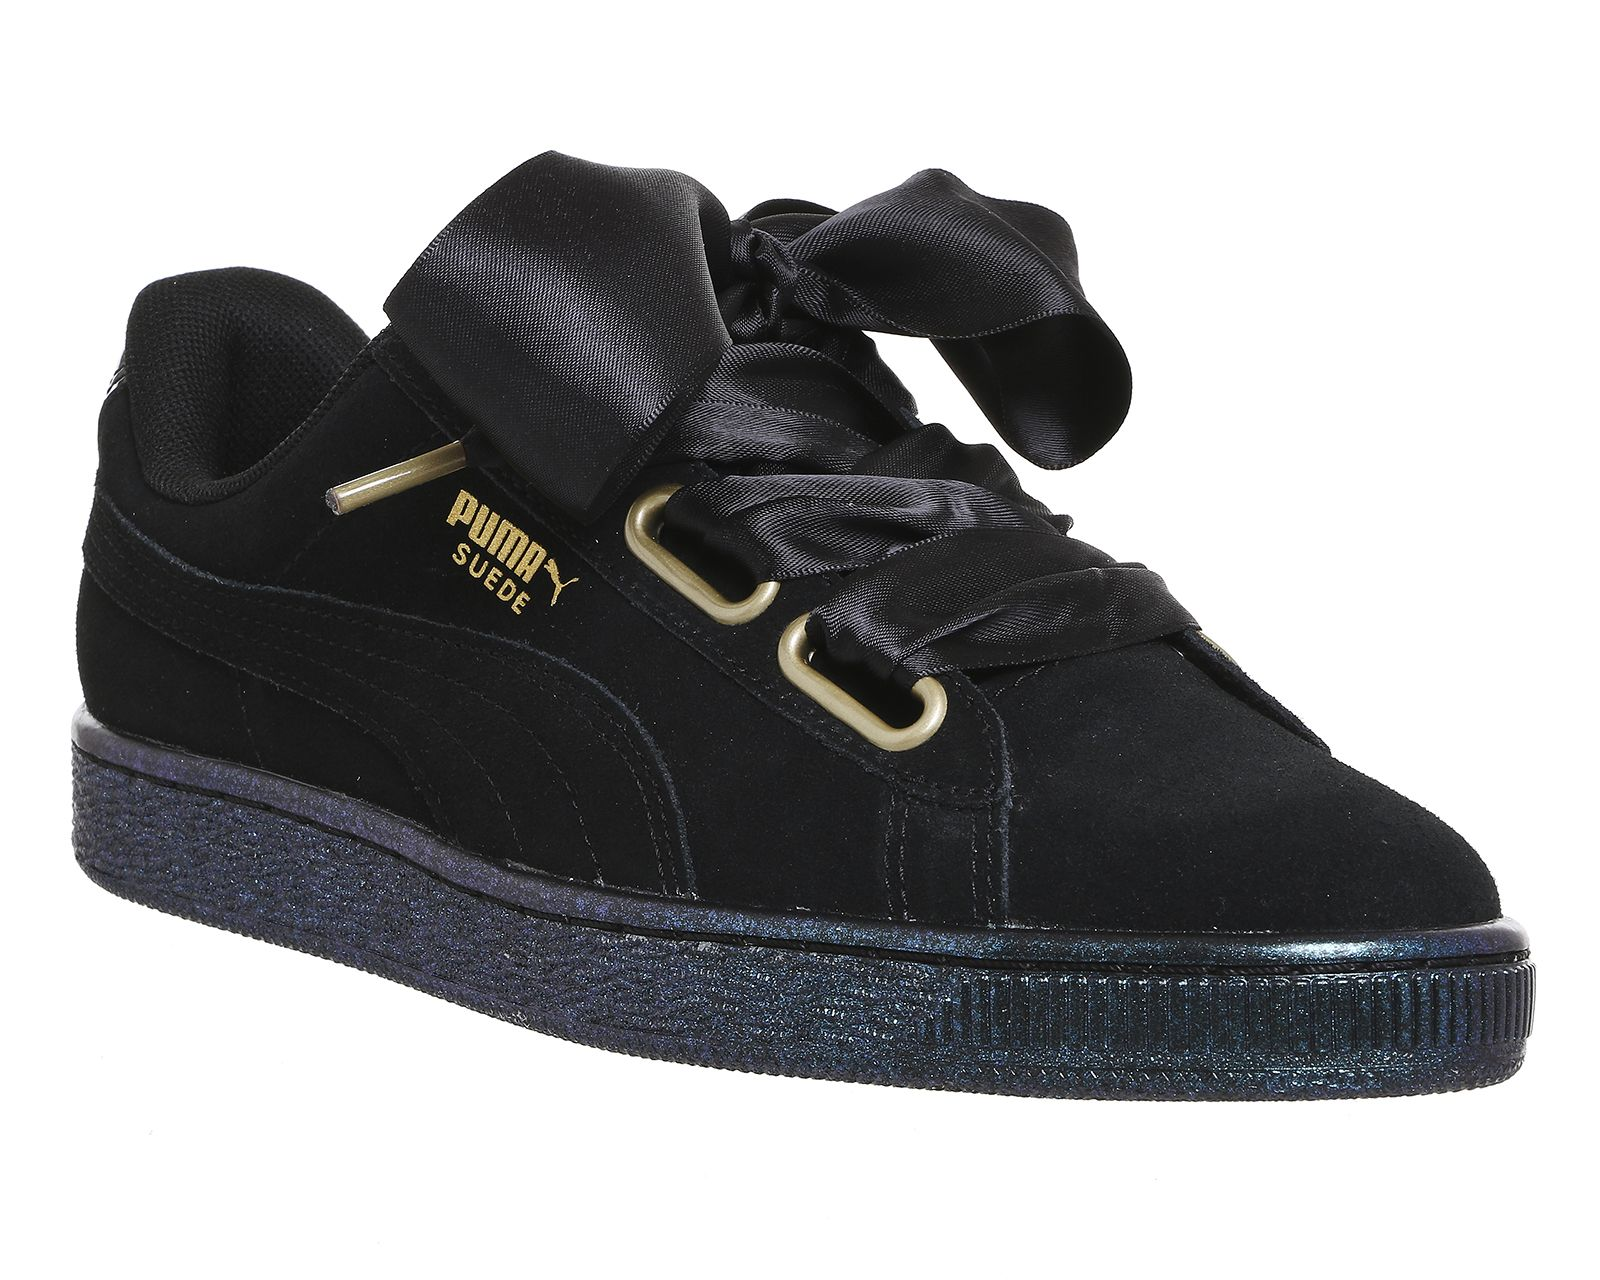 half off 8d2f9 4aa72 Puma Suede Heart Puma Black Satin | Must have❤️ | Puma ...